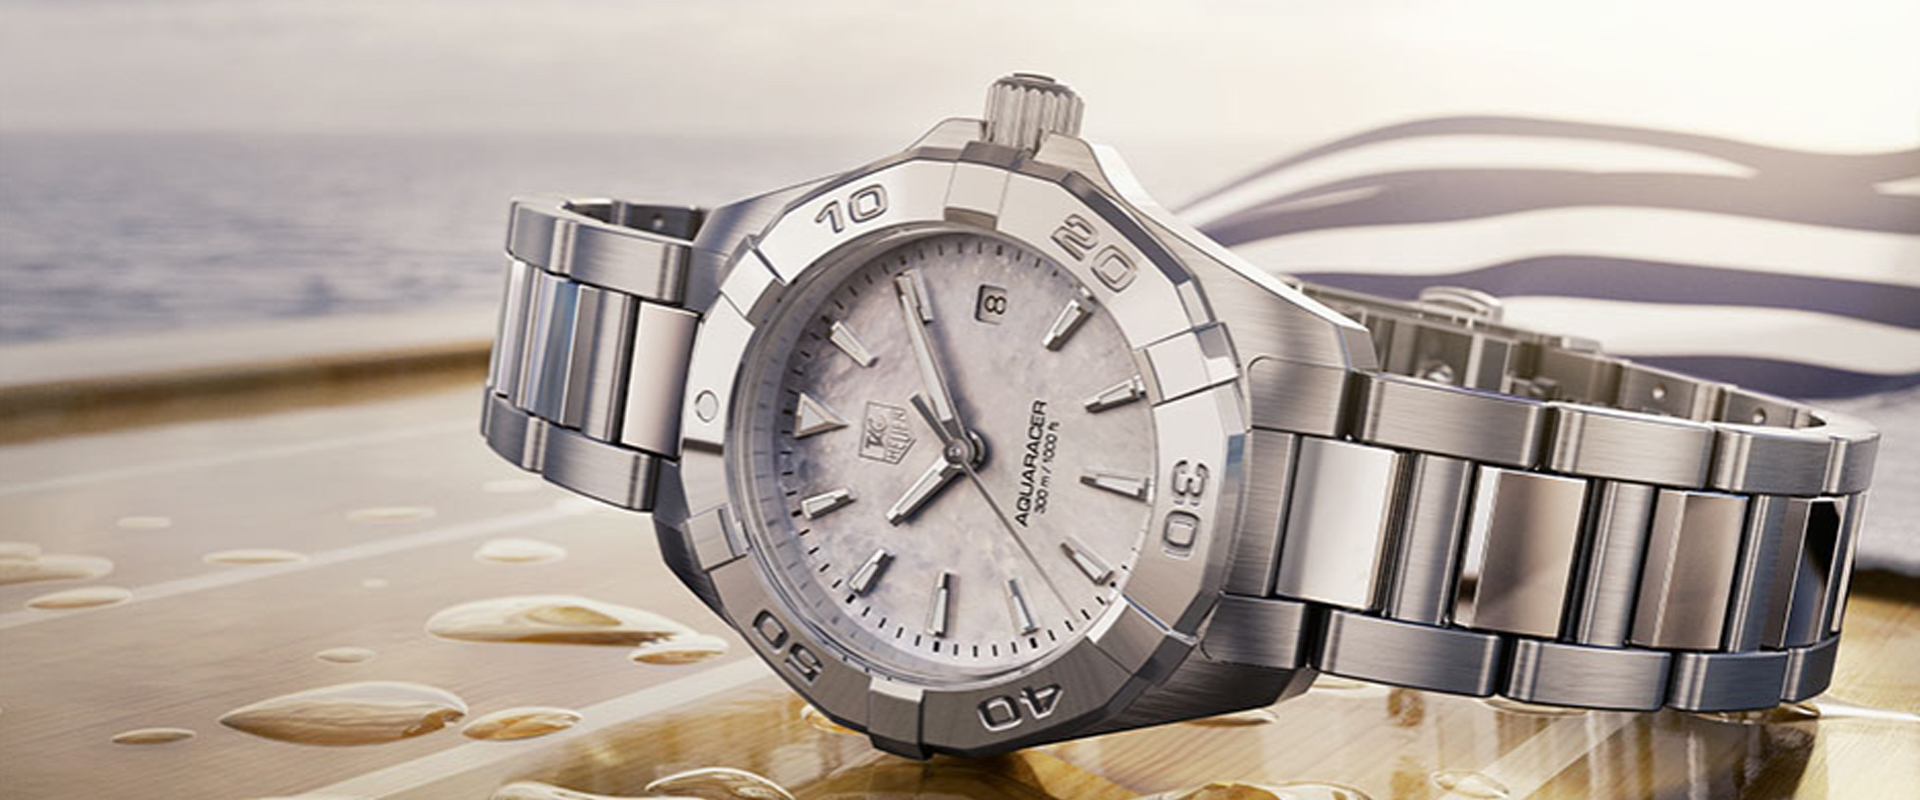 Ladies-Aquaracer-Tag